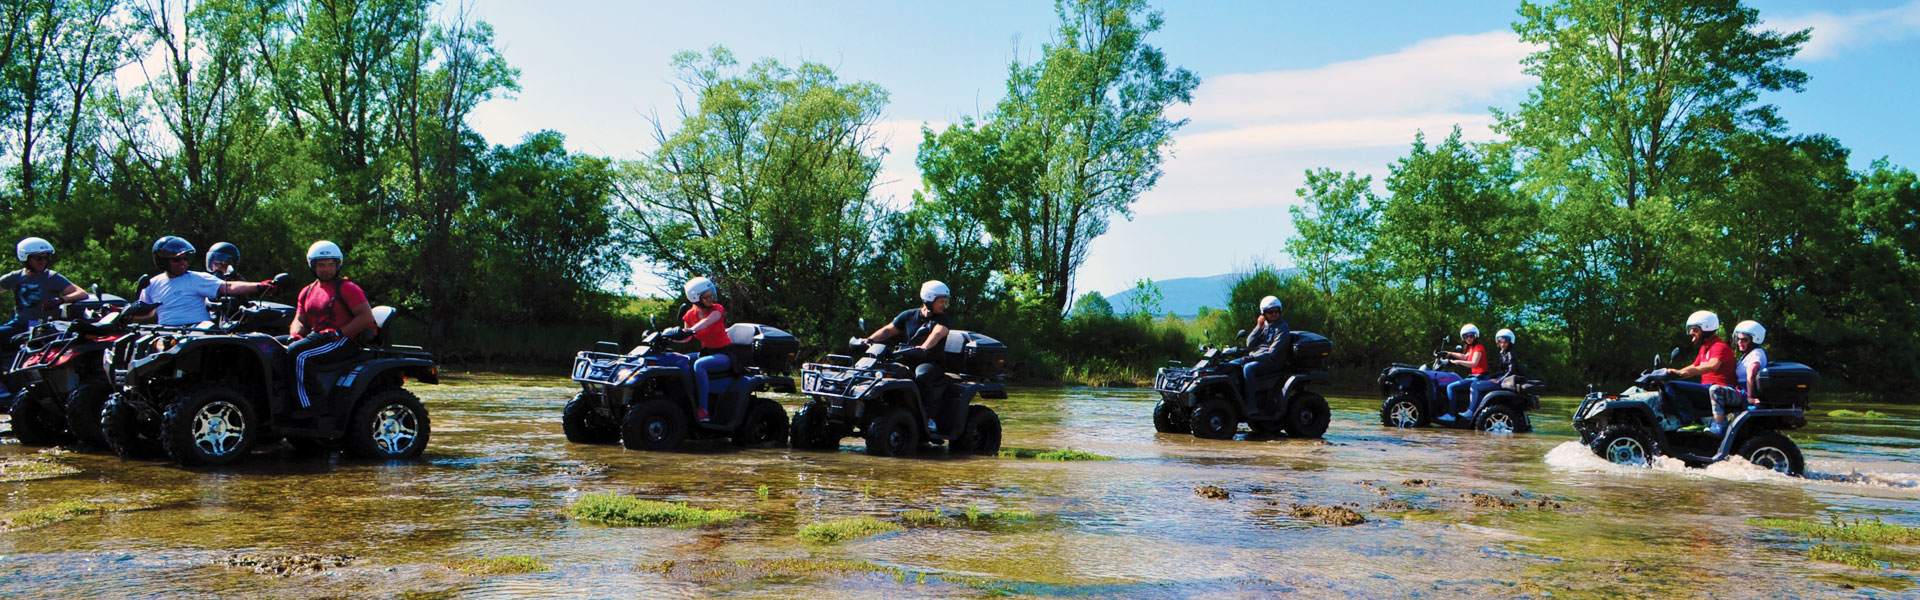 ATV RIVER TOUR